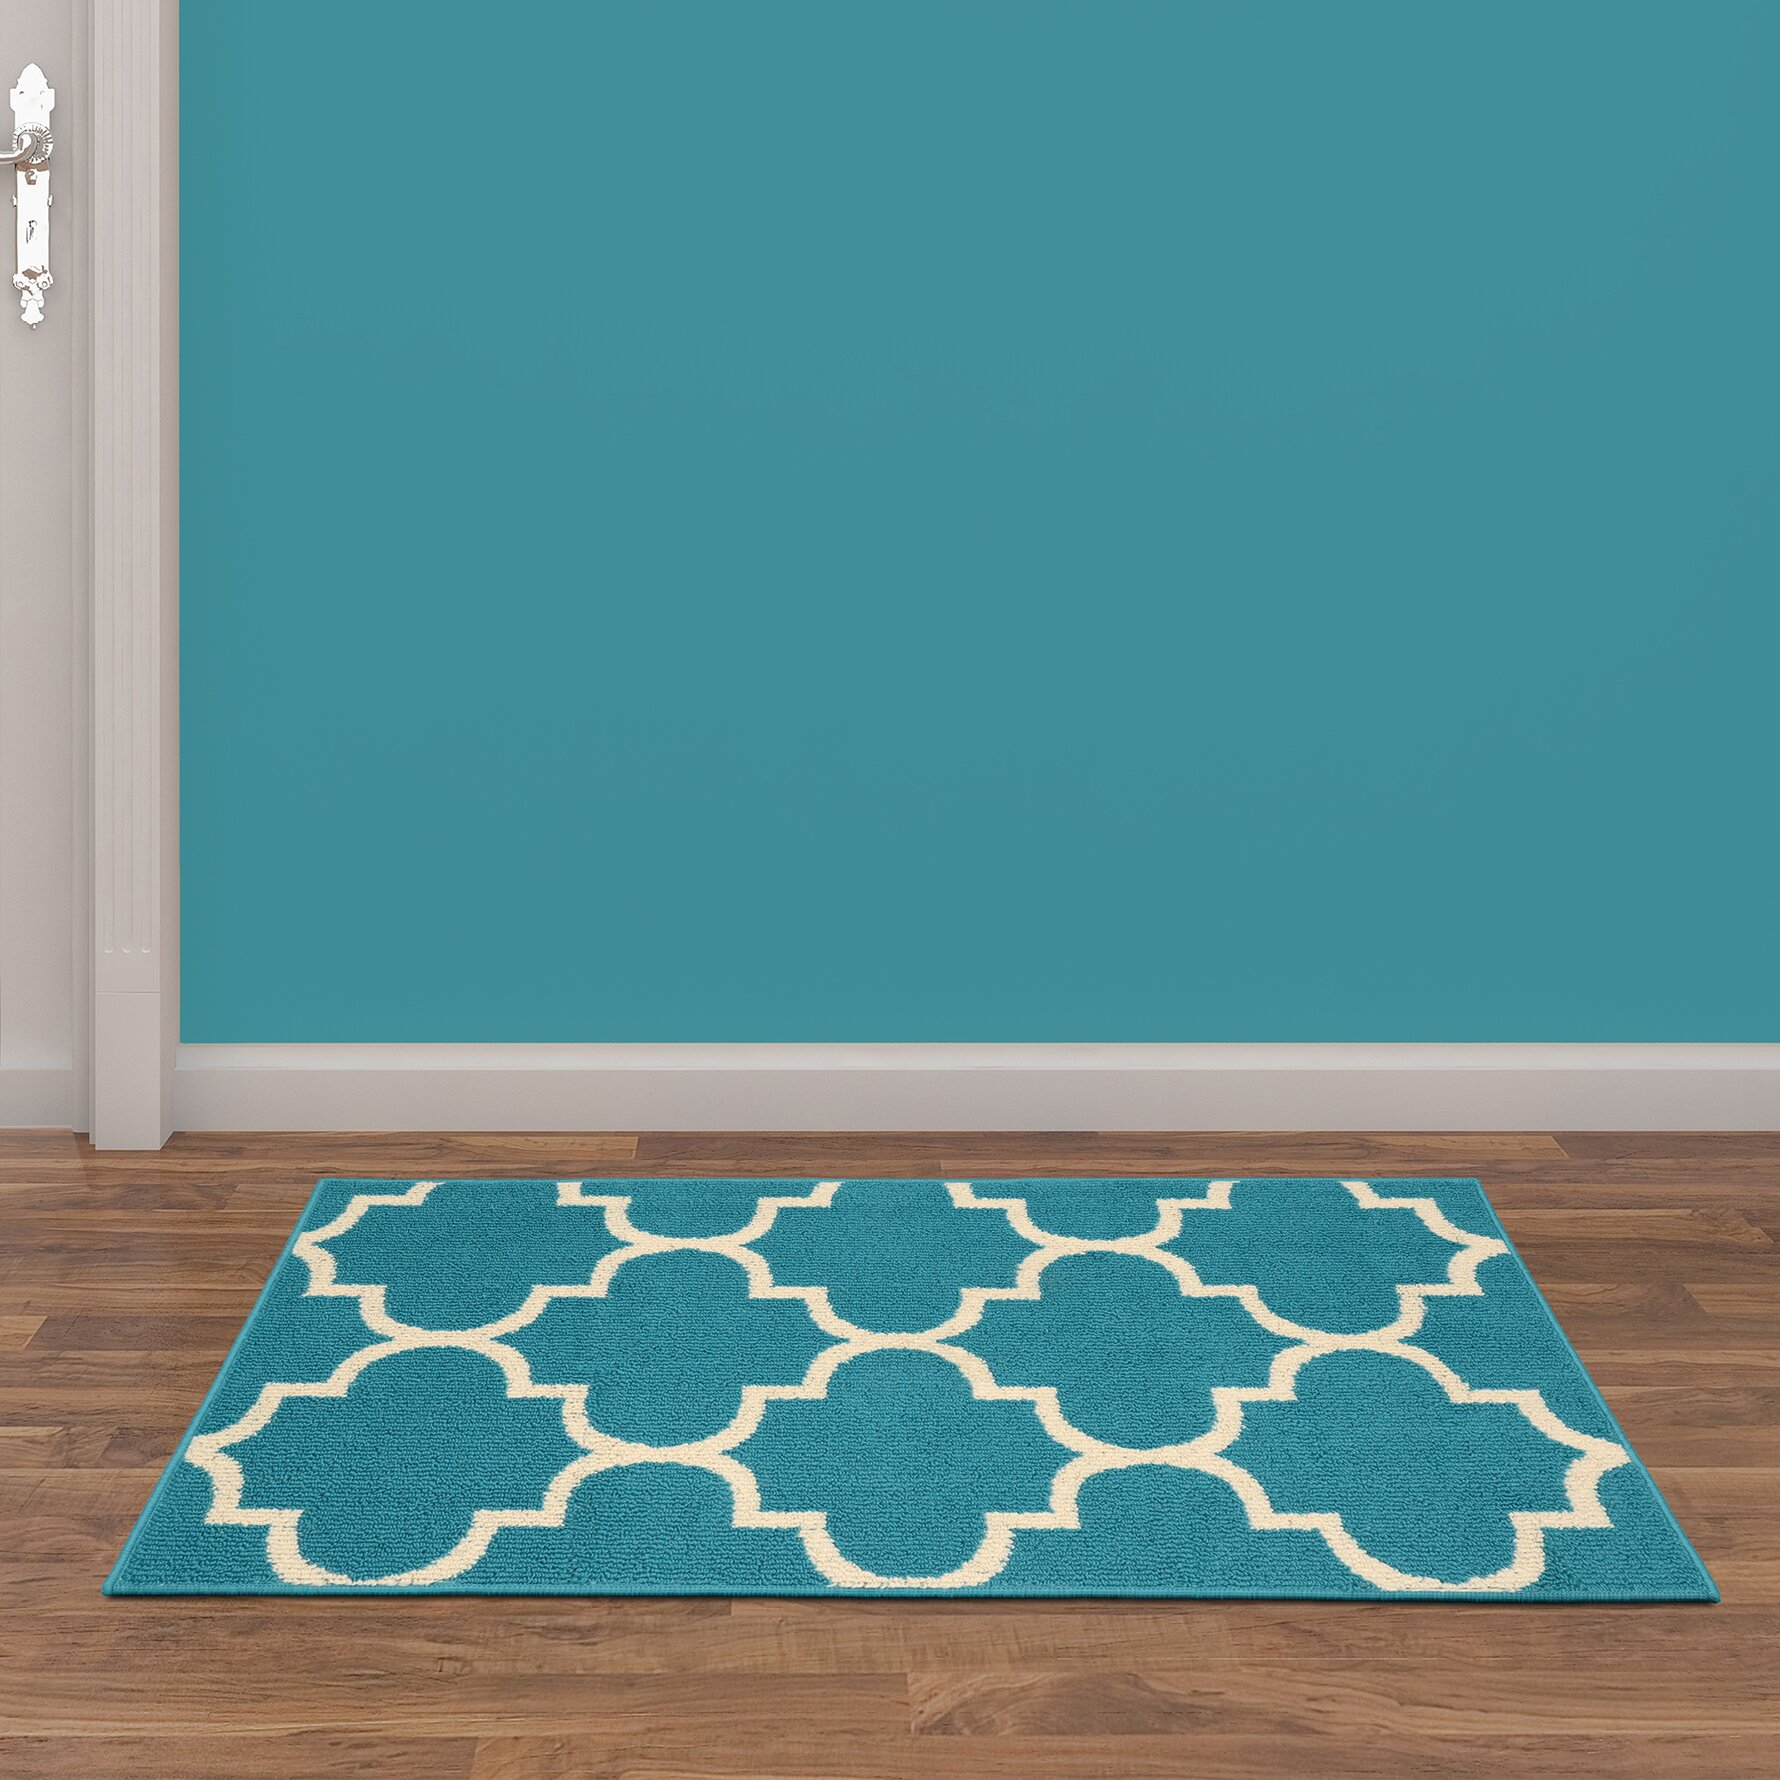 Garland Rug Large Quatrefoil Teal/Ivory Area Rug & Reviews